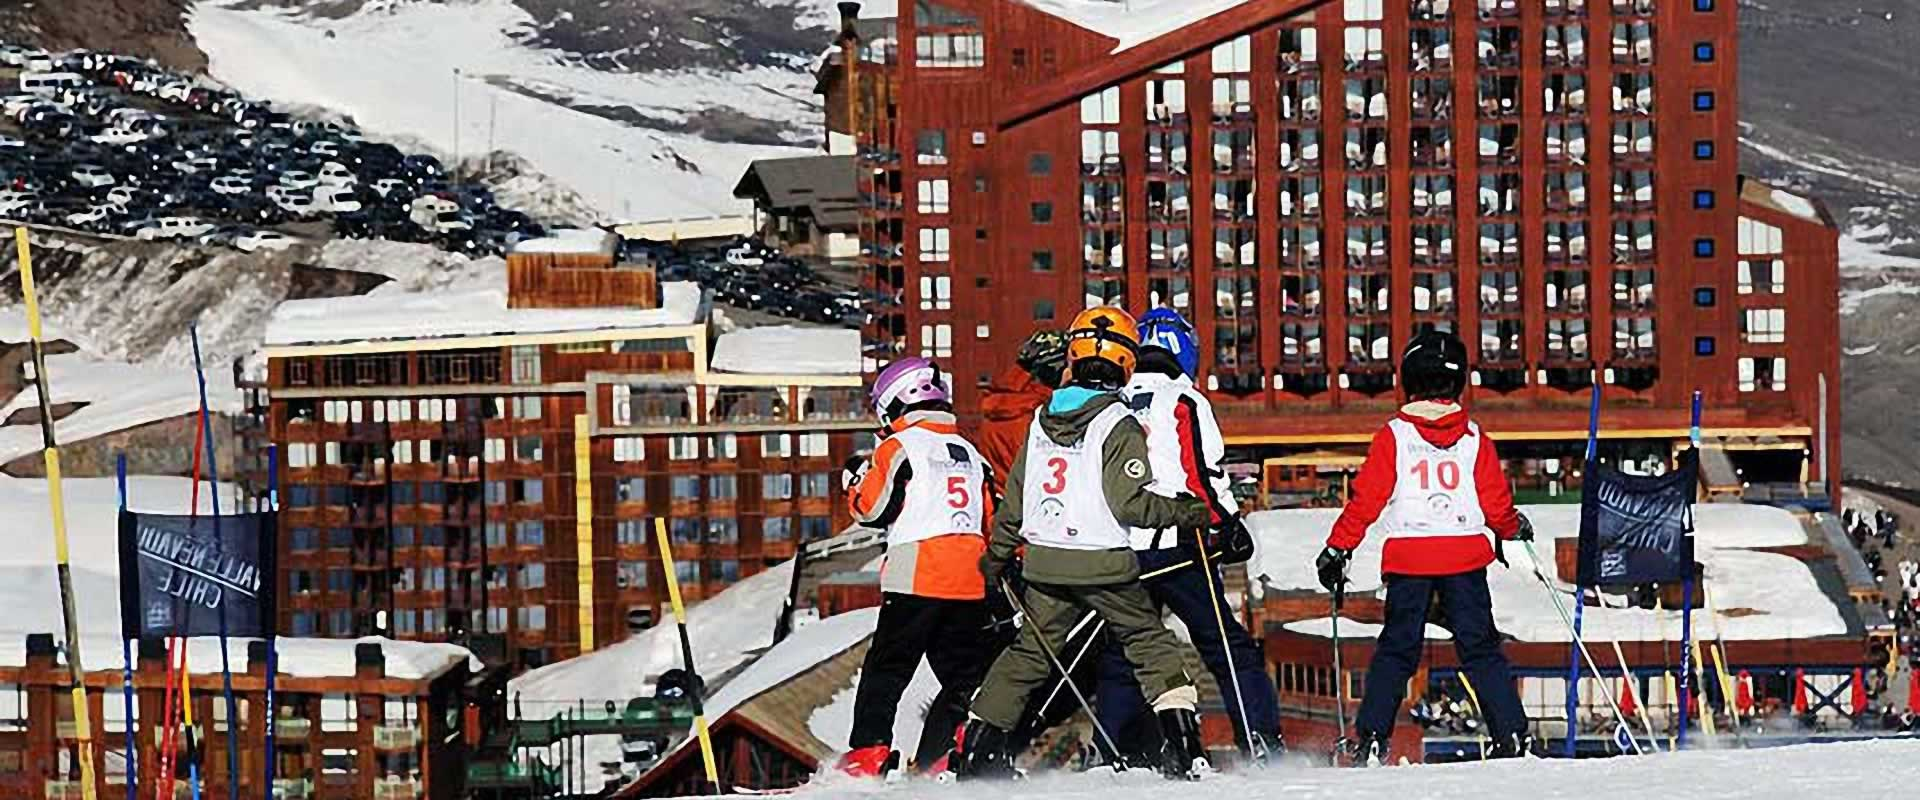 valle nevado esqui